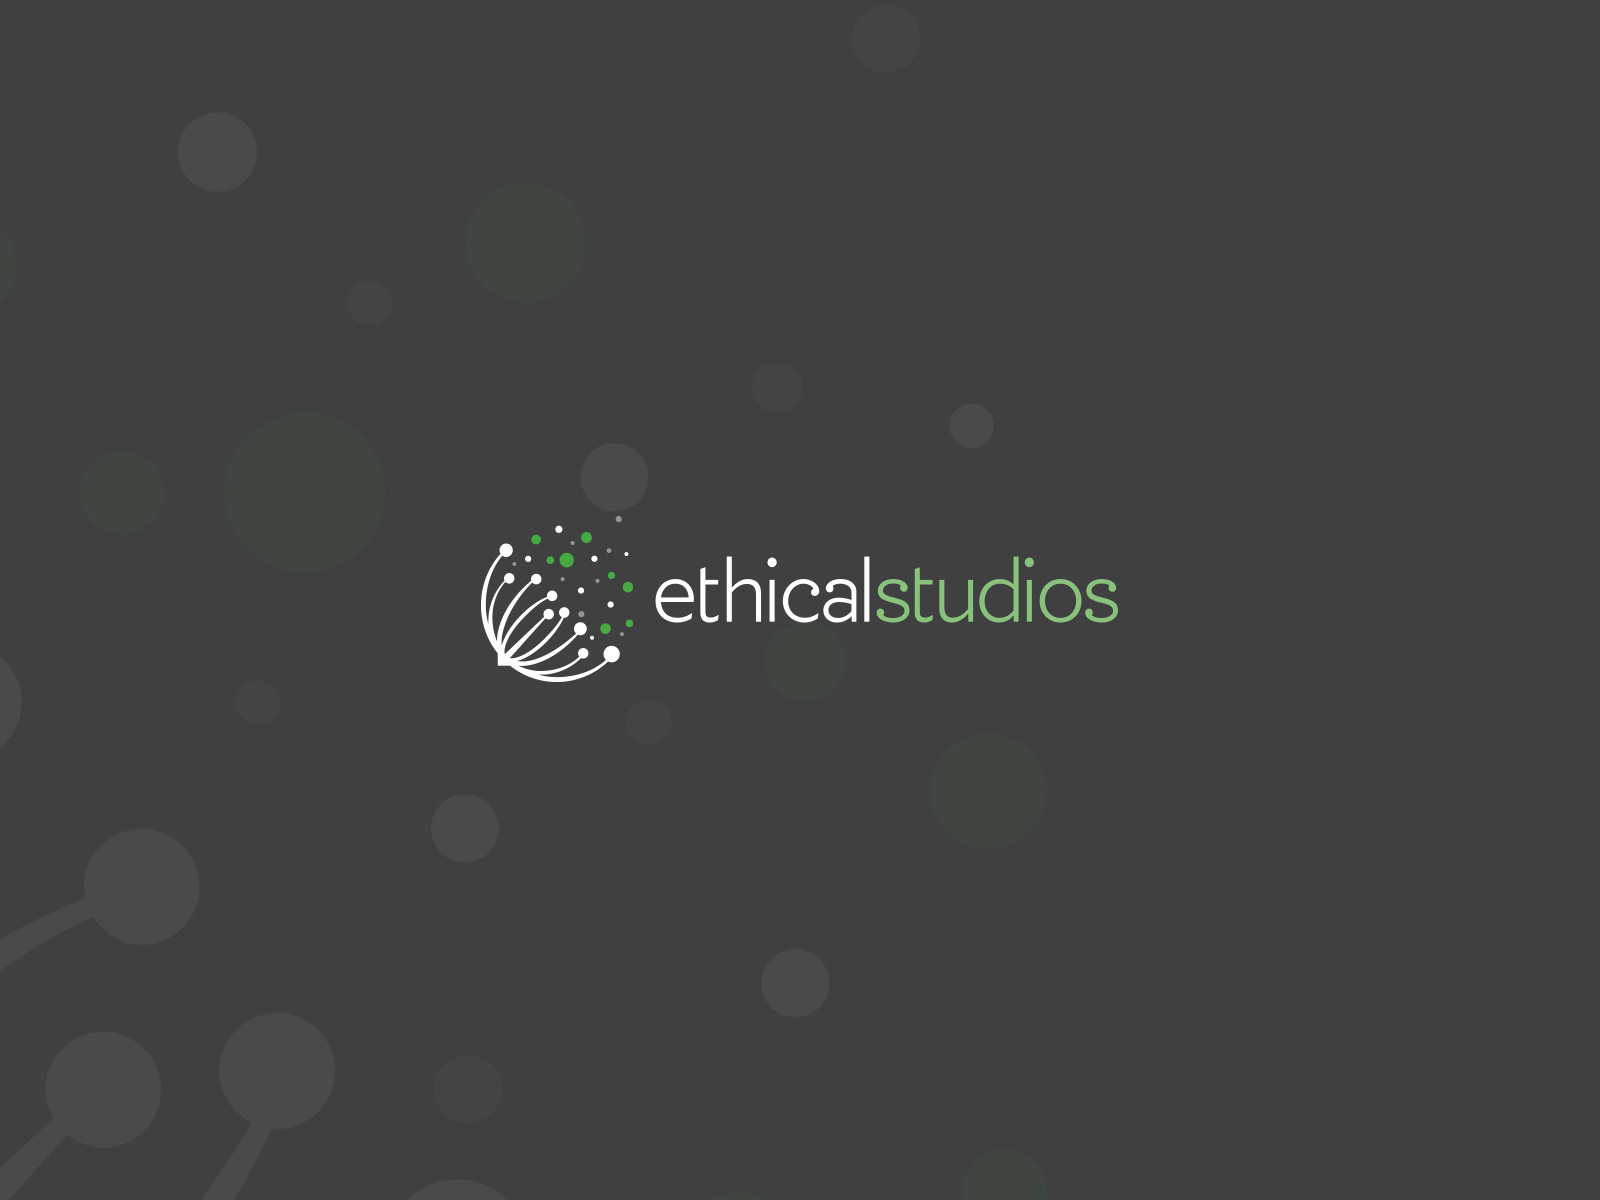 ethical studios logo design